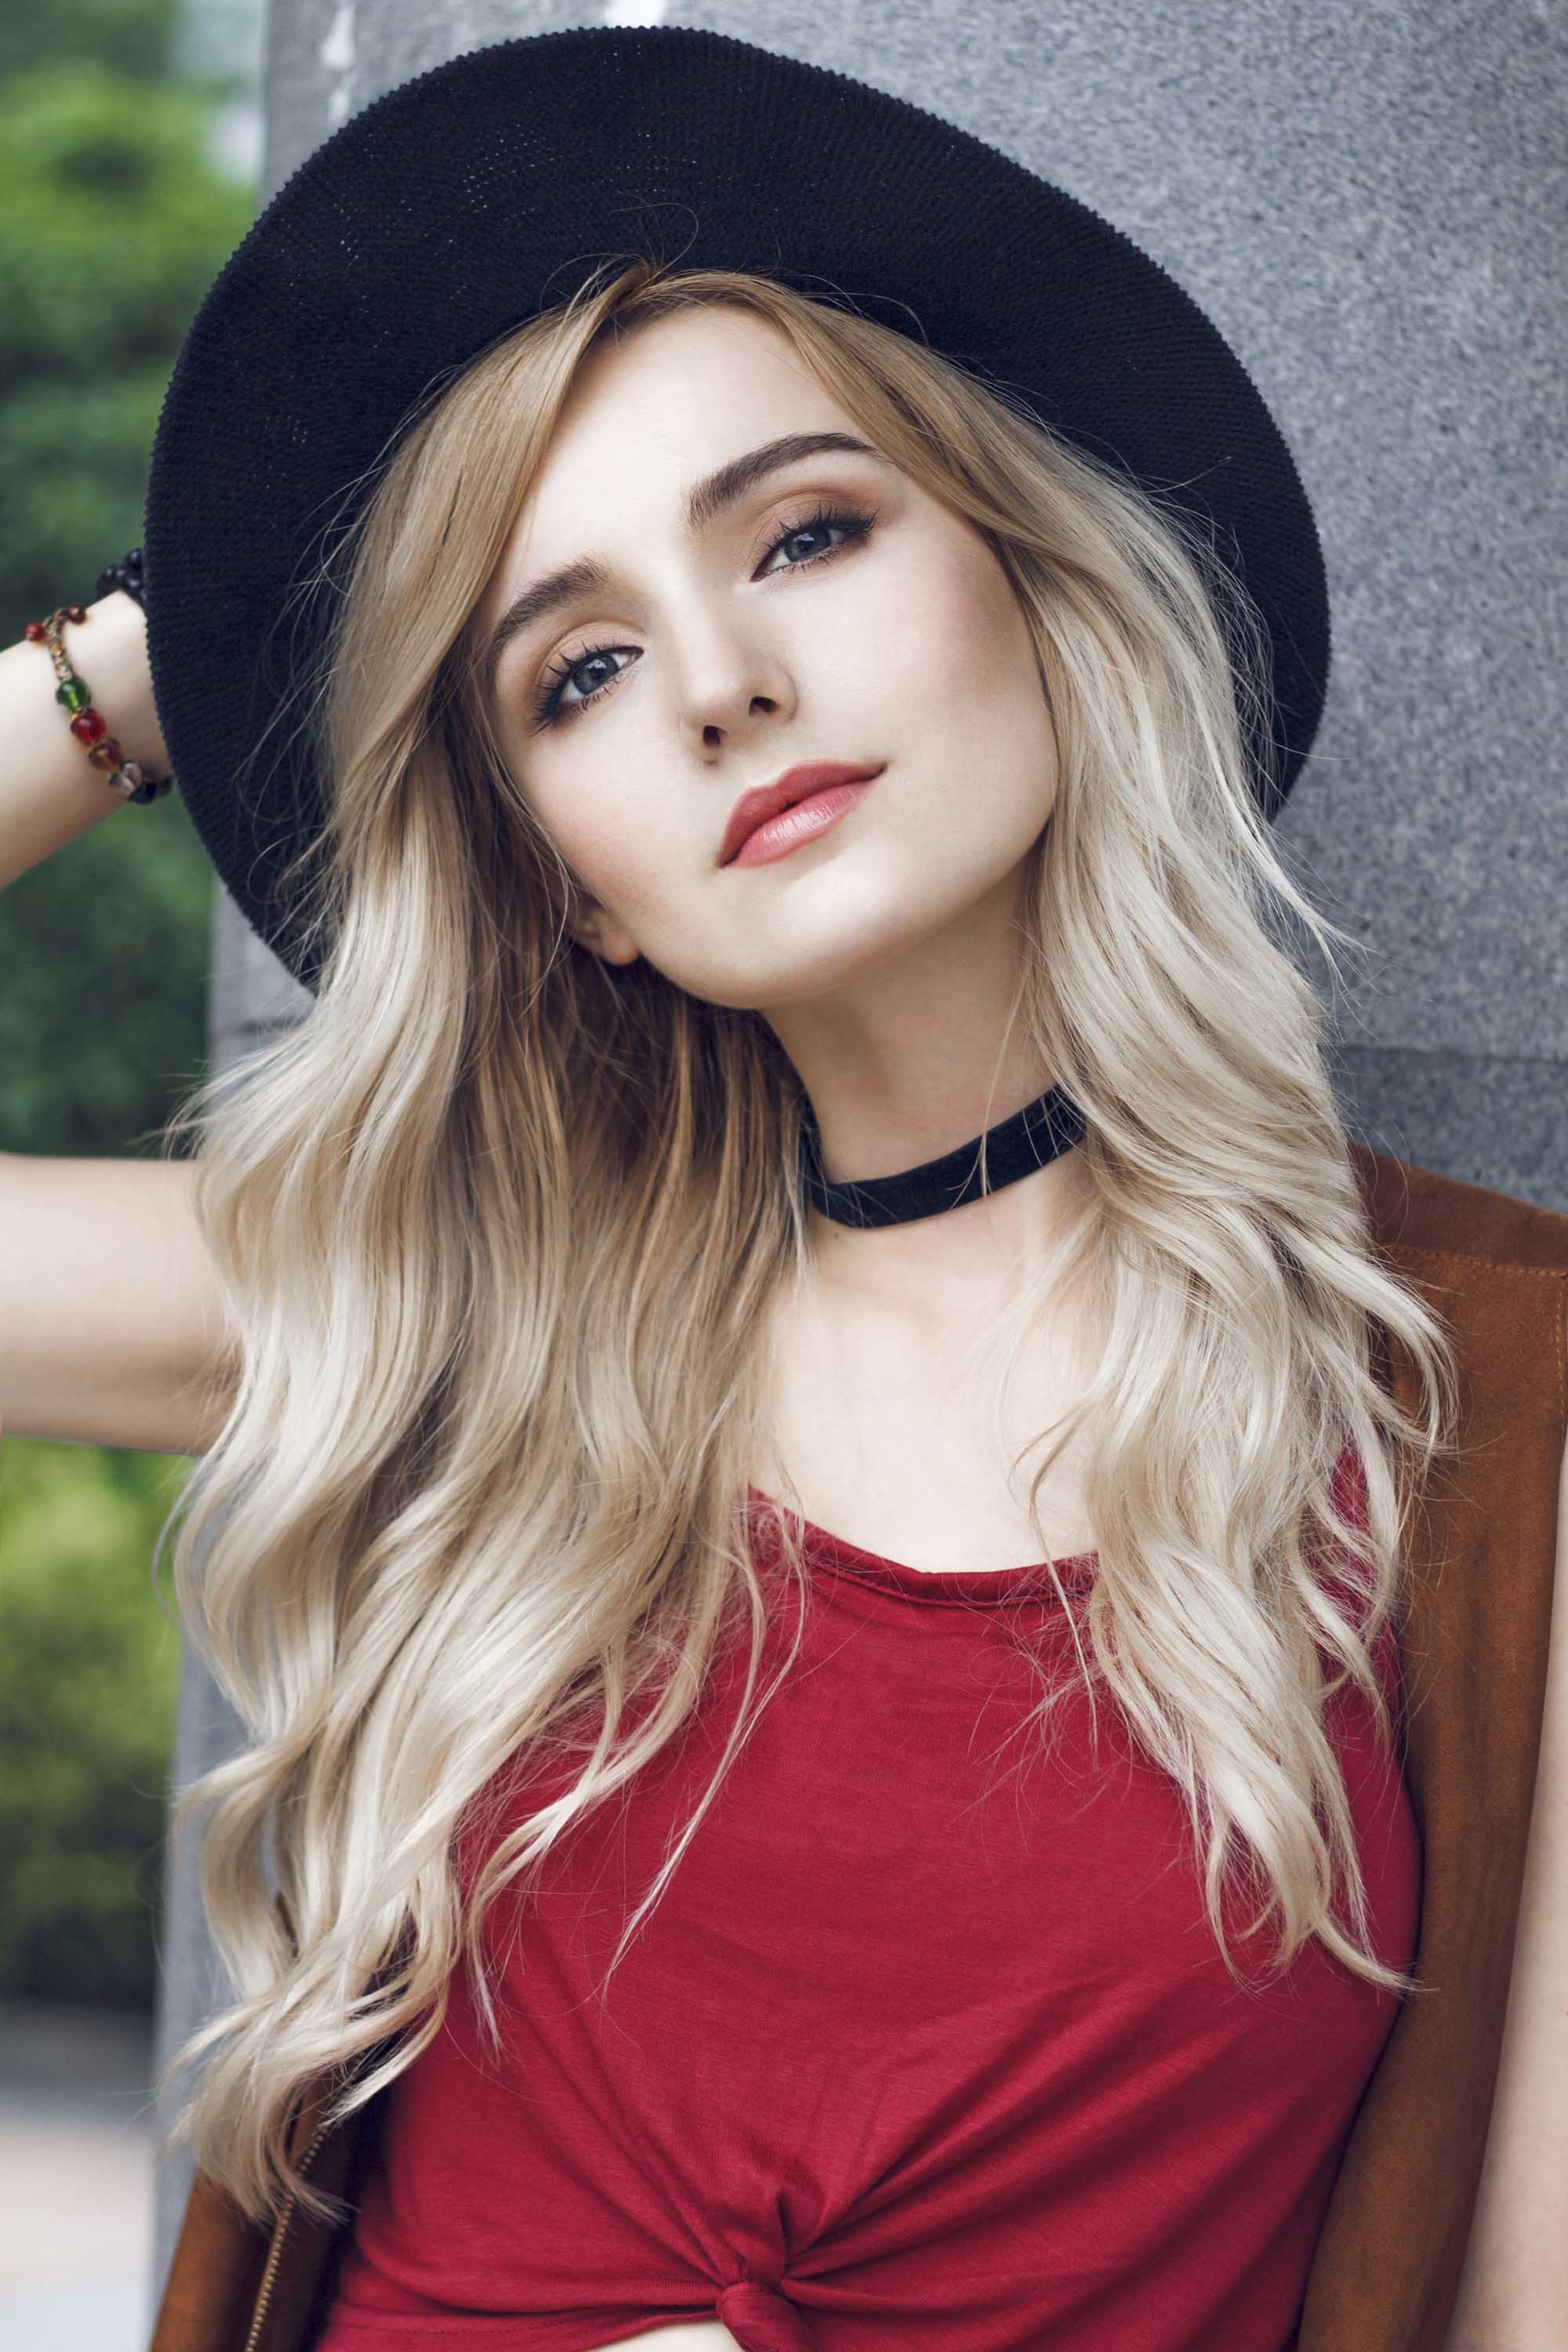 Haircuts for Long Hair: 7 Fresh, Fashionable Ways to Style ...